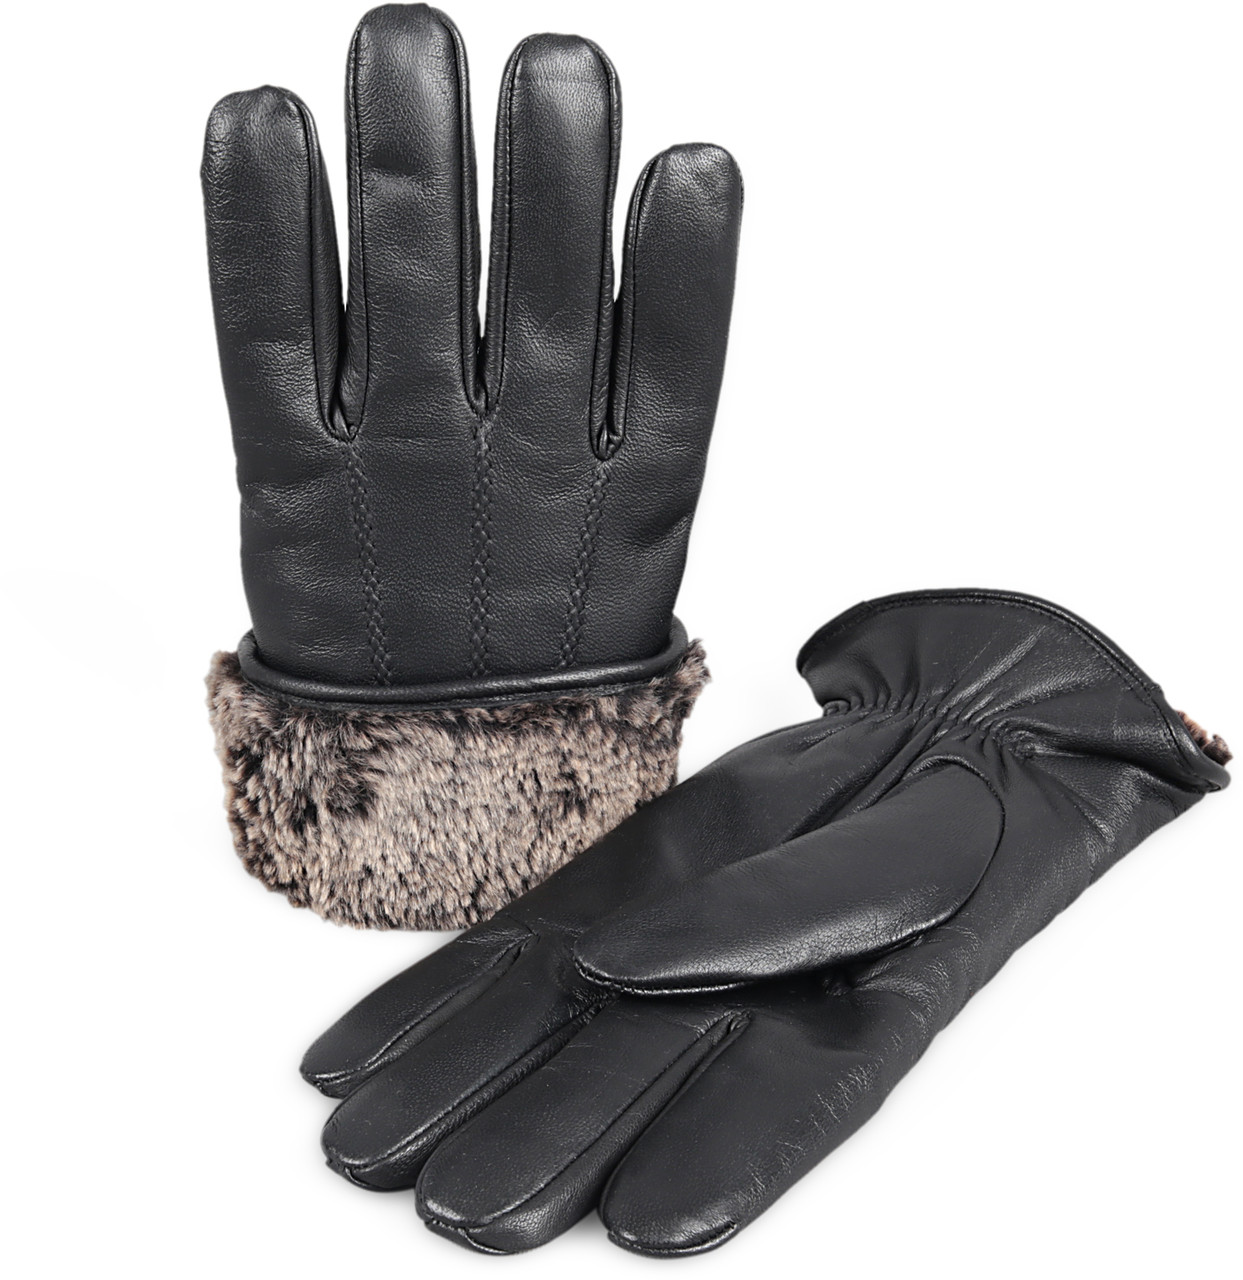 3512d41dd3ad3 ... Men's Premium Shearling Sheepskin Fur Lined Leather Gloves Black. Image  1. Loading zoom